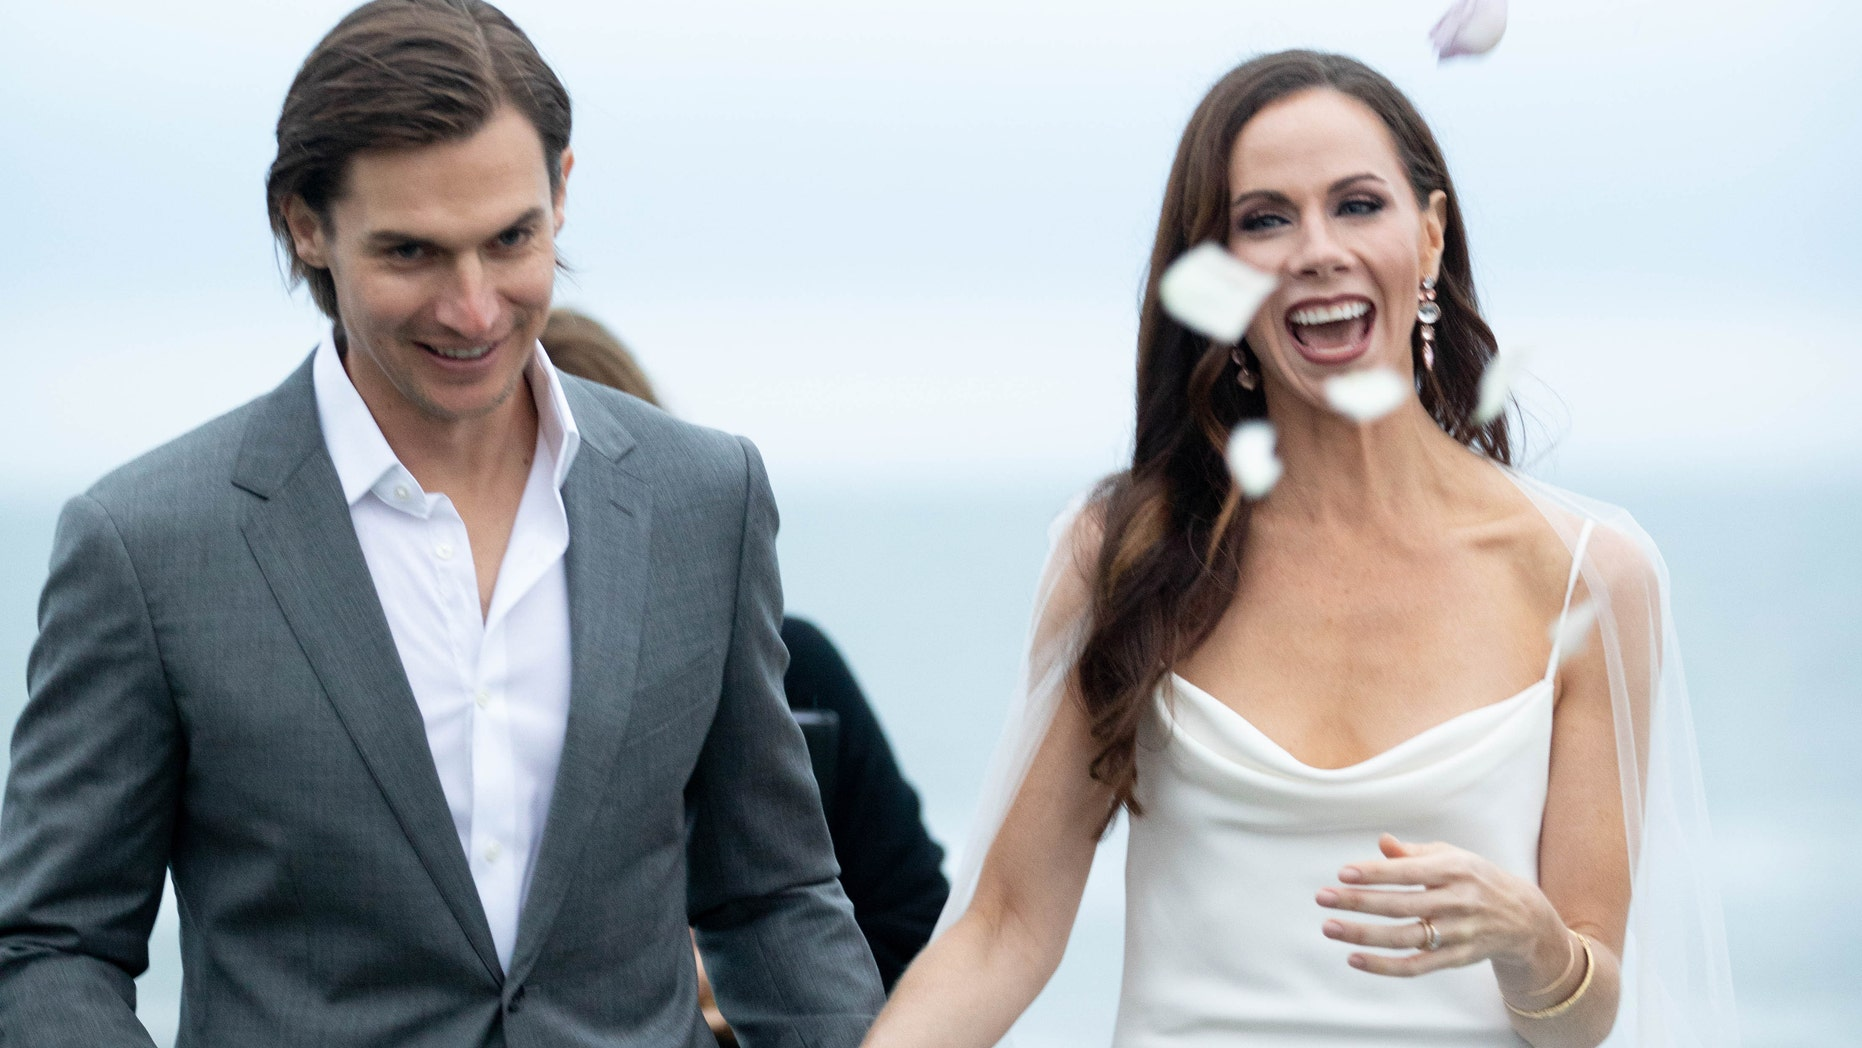 See pictures from former first daughter Barbara Bush's wedding